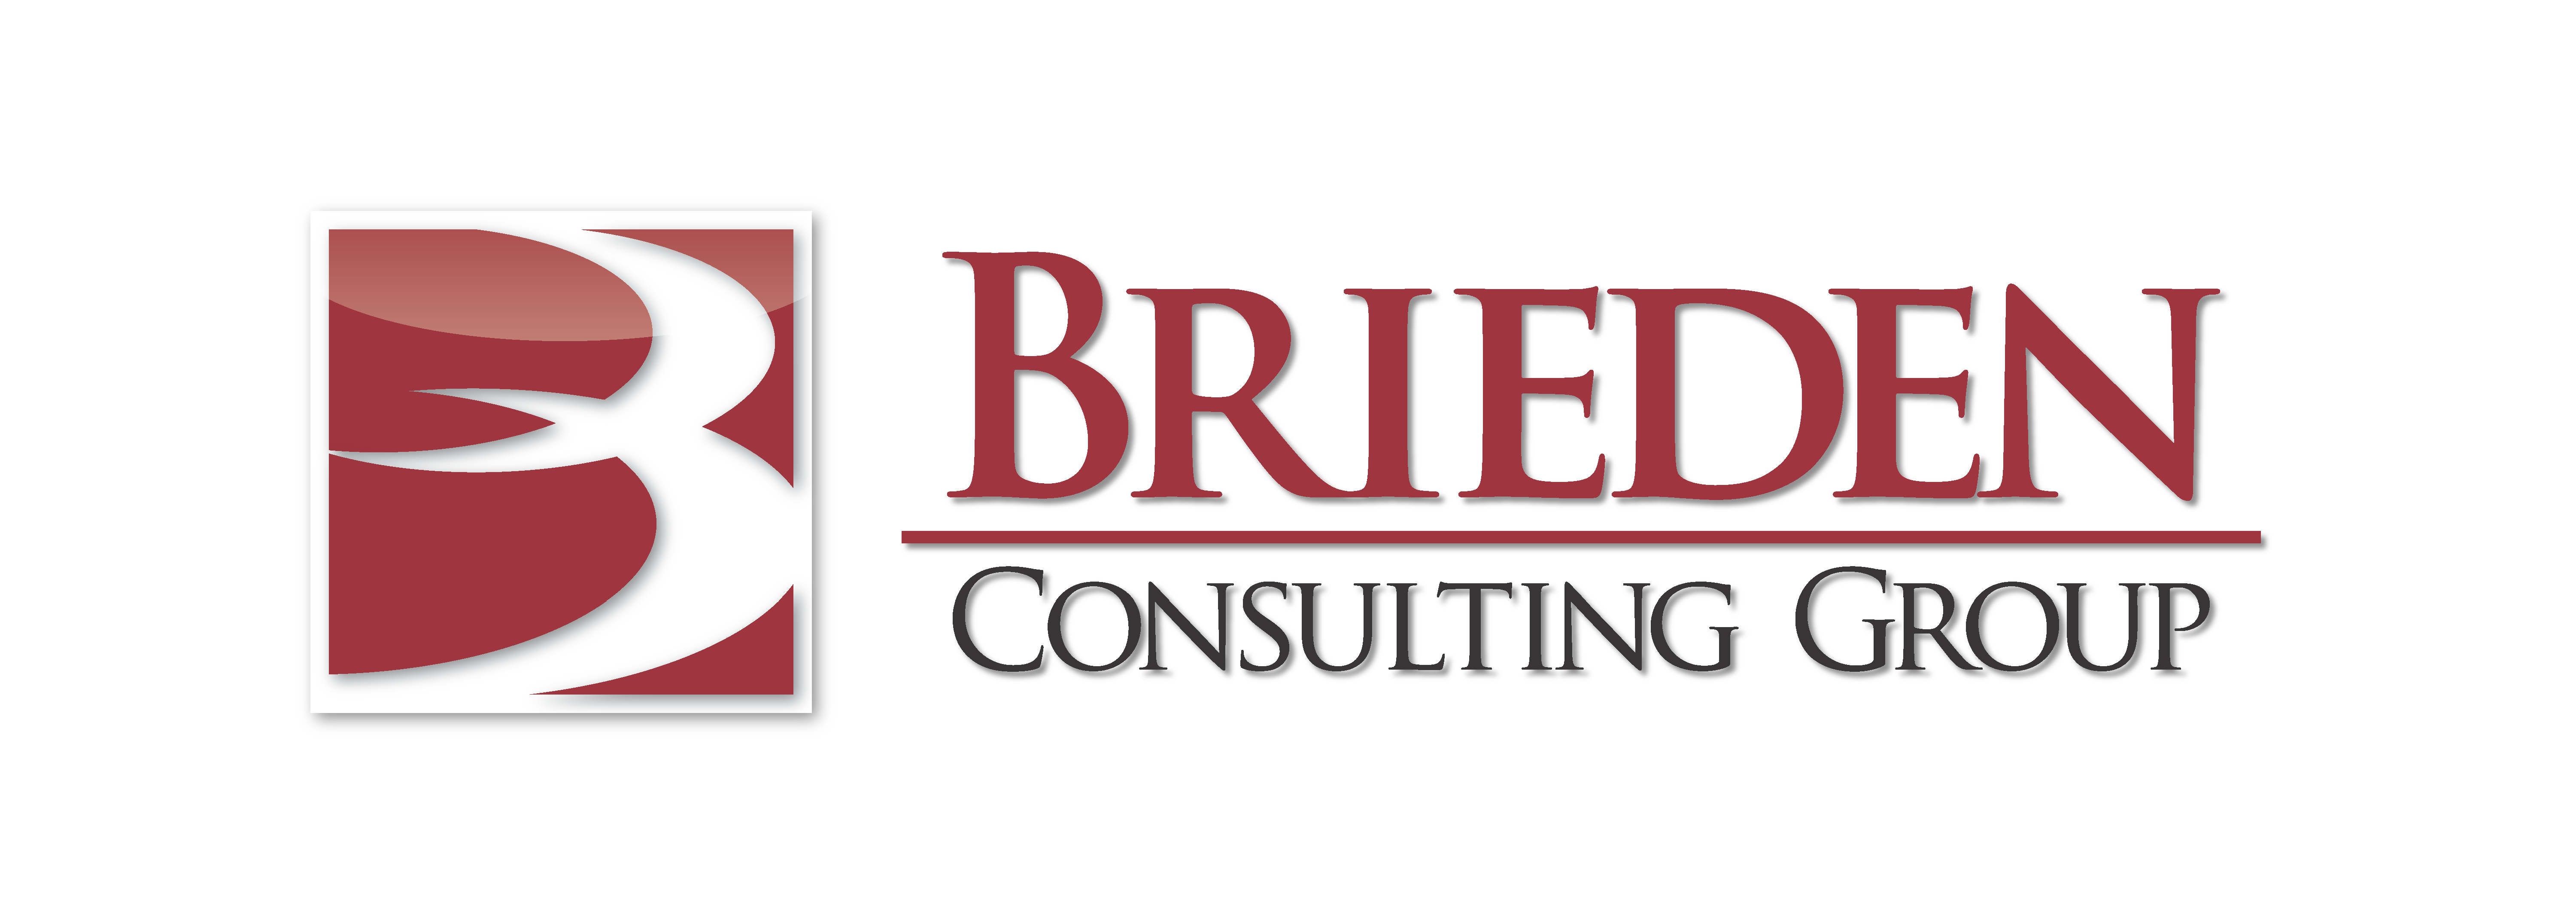 Brieden Consulting Group - The employee benefits broker and group health insurance advisor in Grosse Pointe